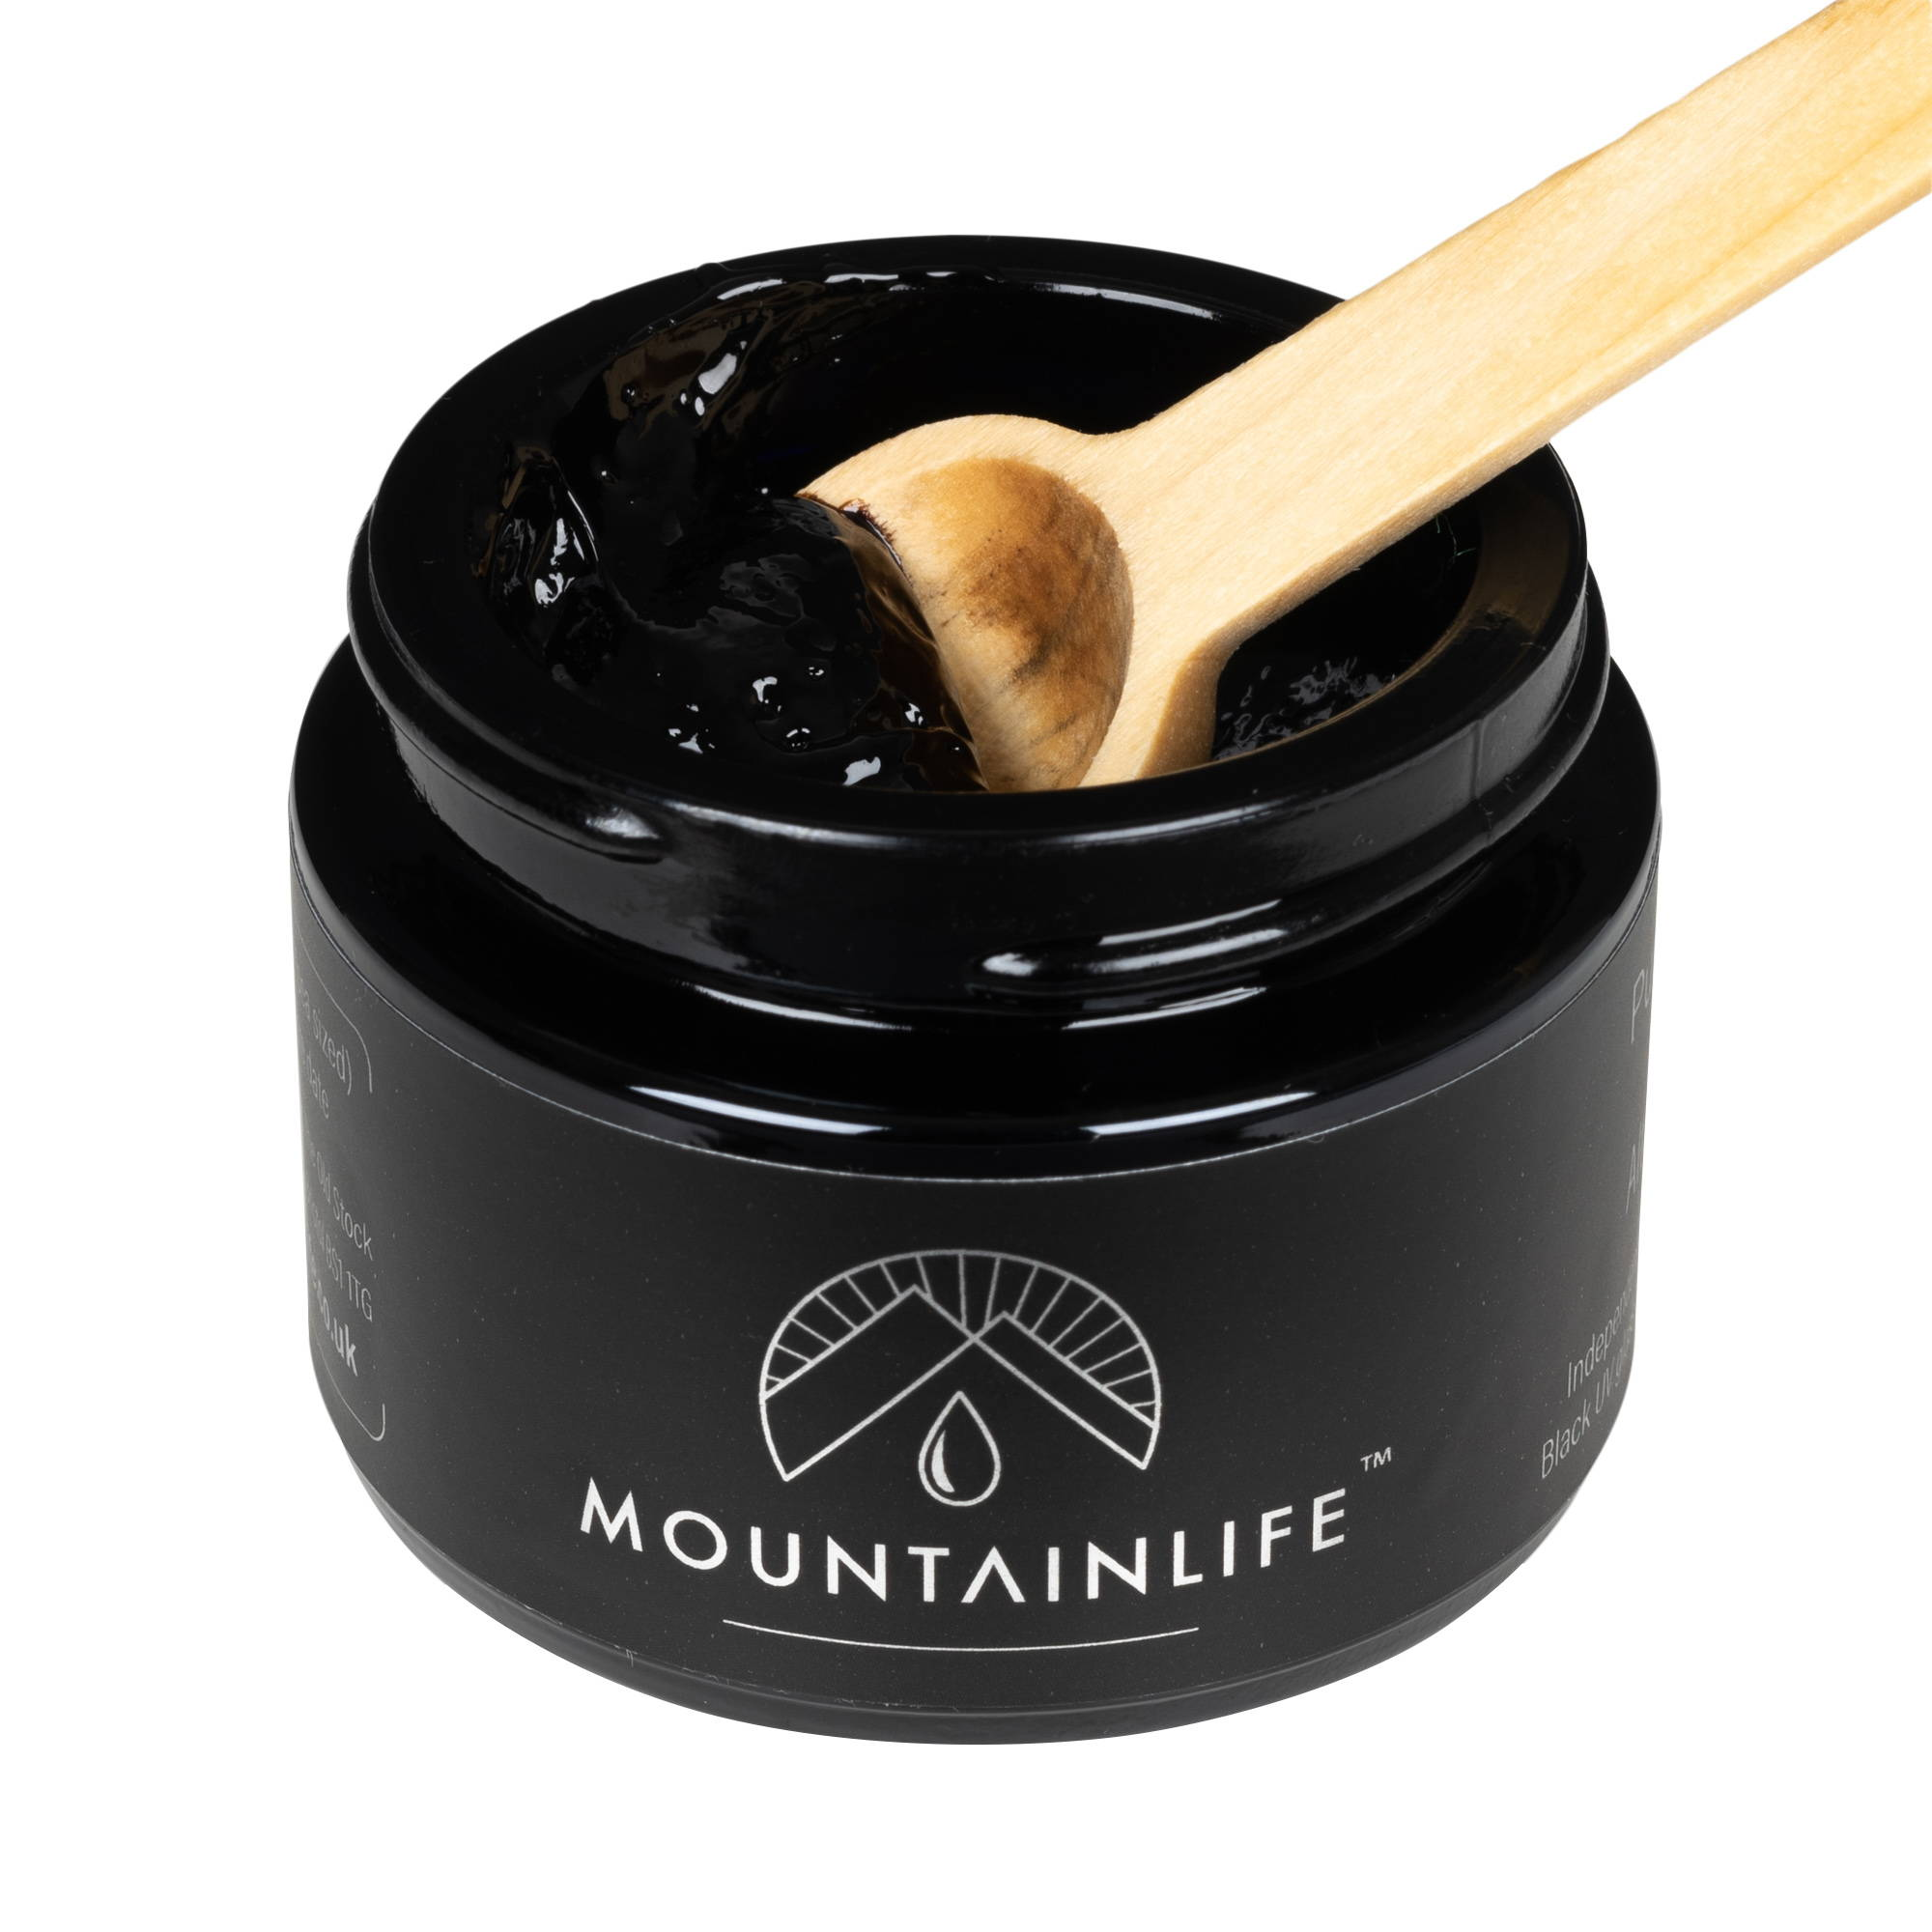 Mountainlife Shilajit resin in 30g UV glass jar with wooden scooping spoon